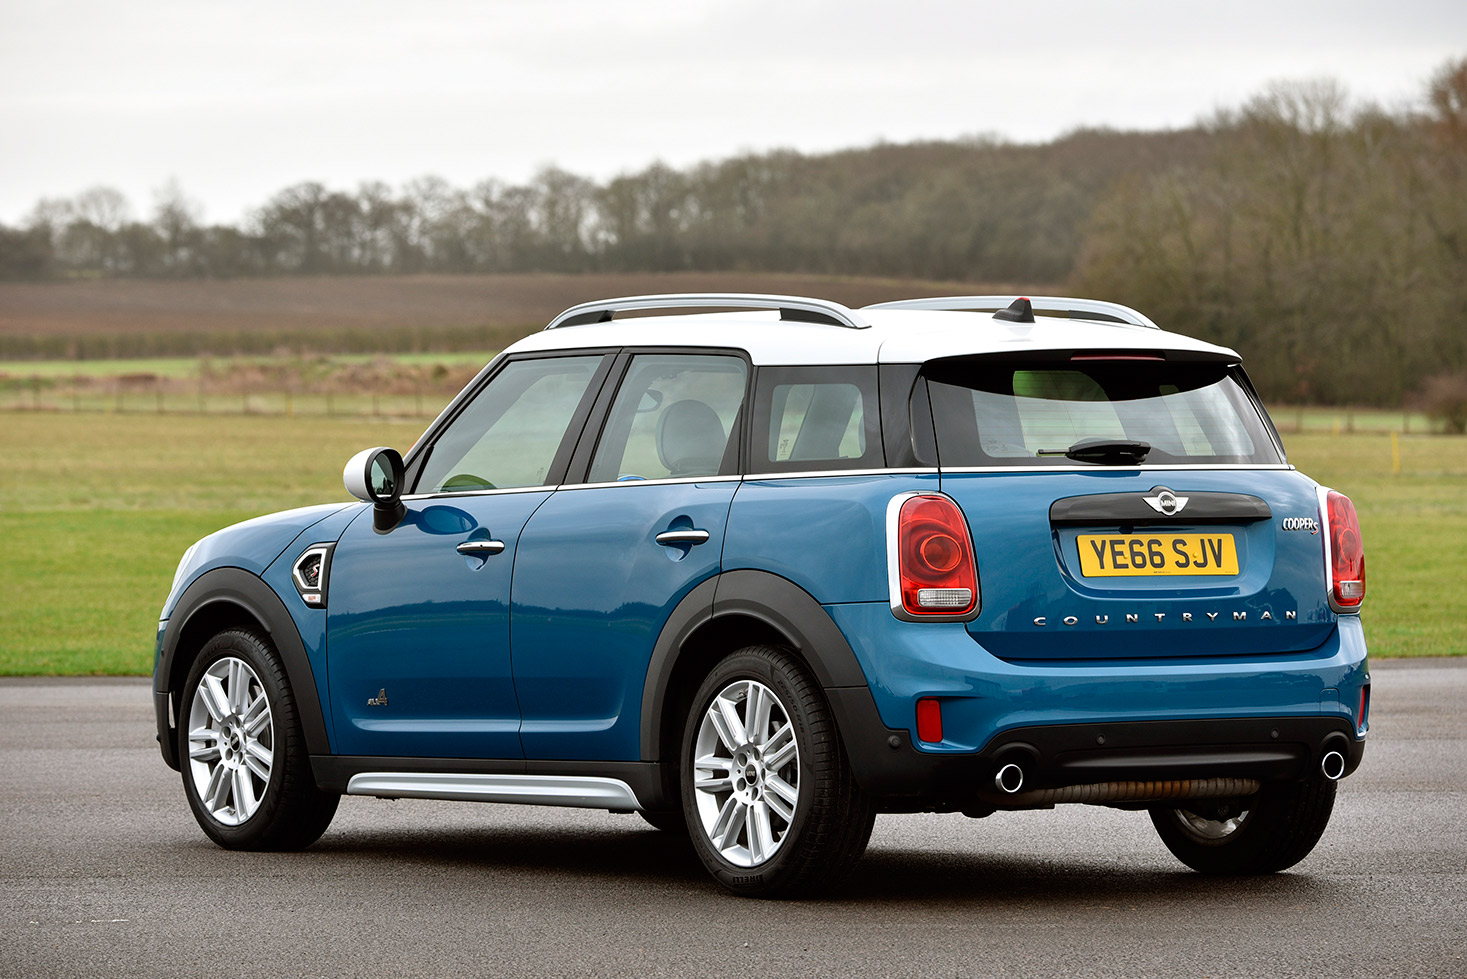 mini-countryman-307.jpg